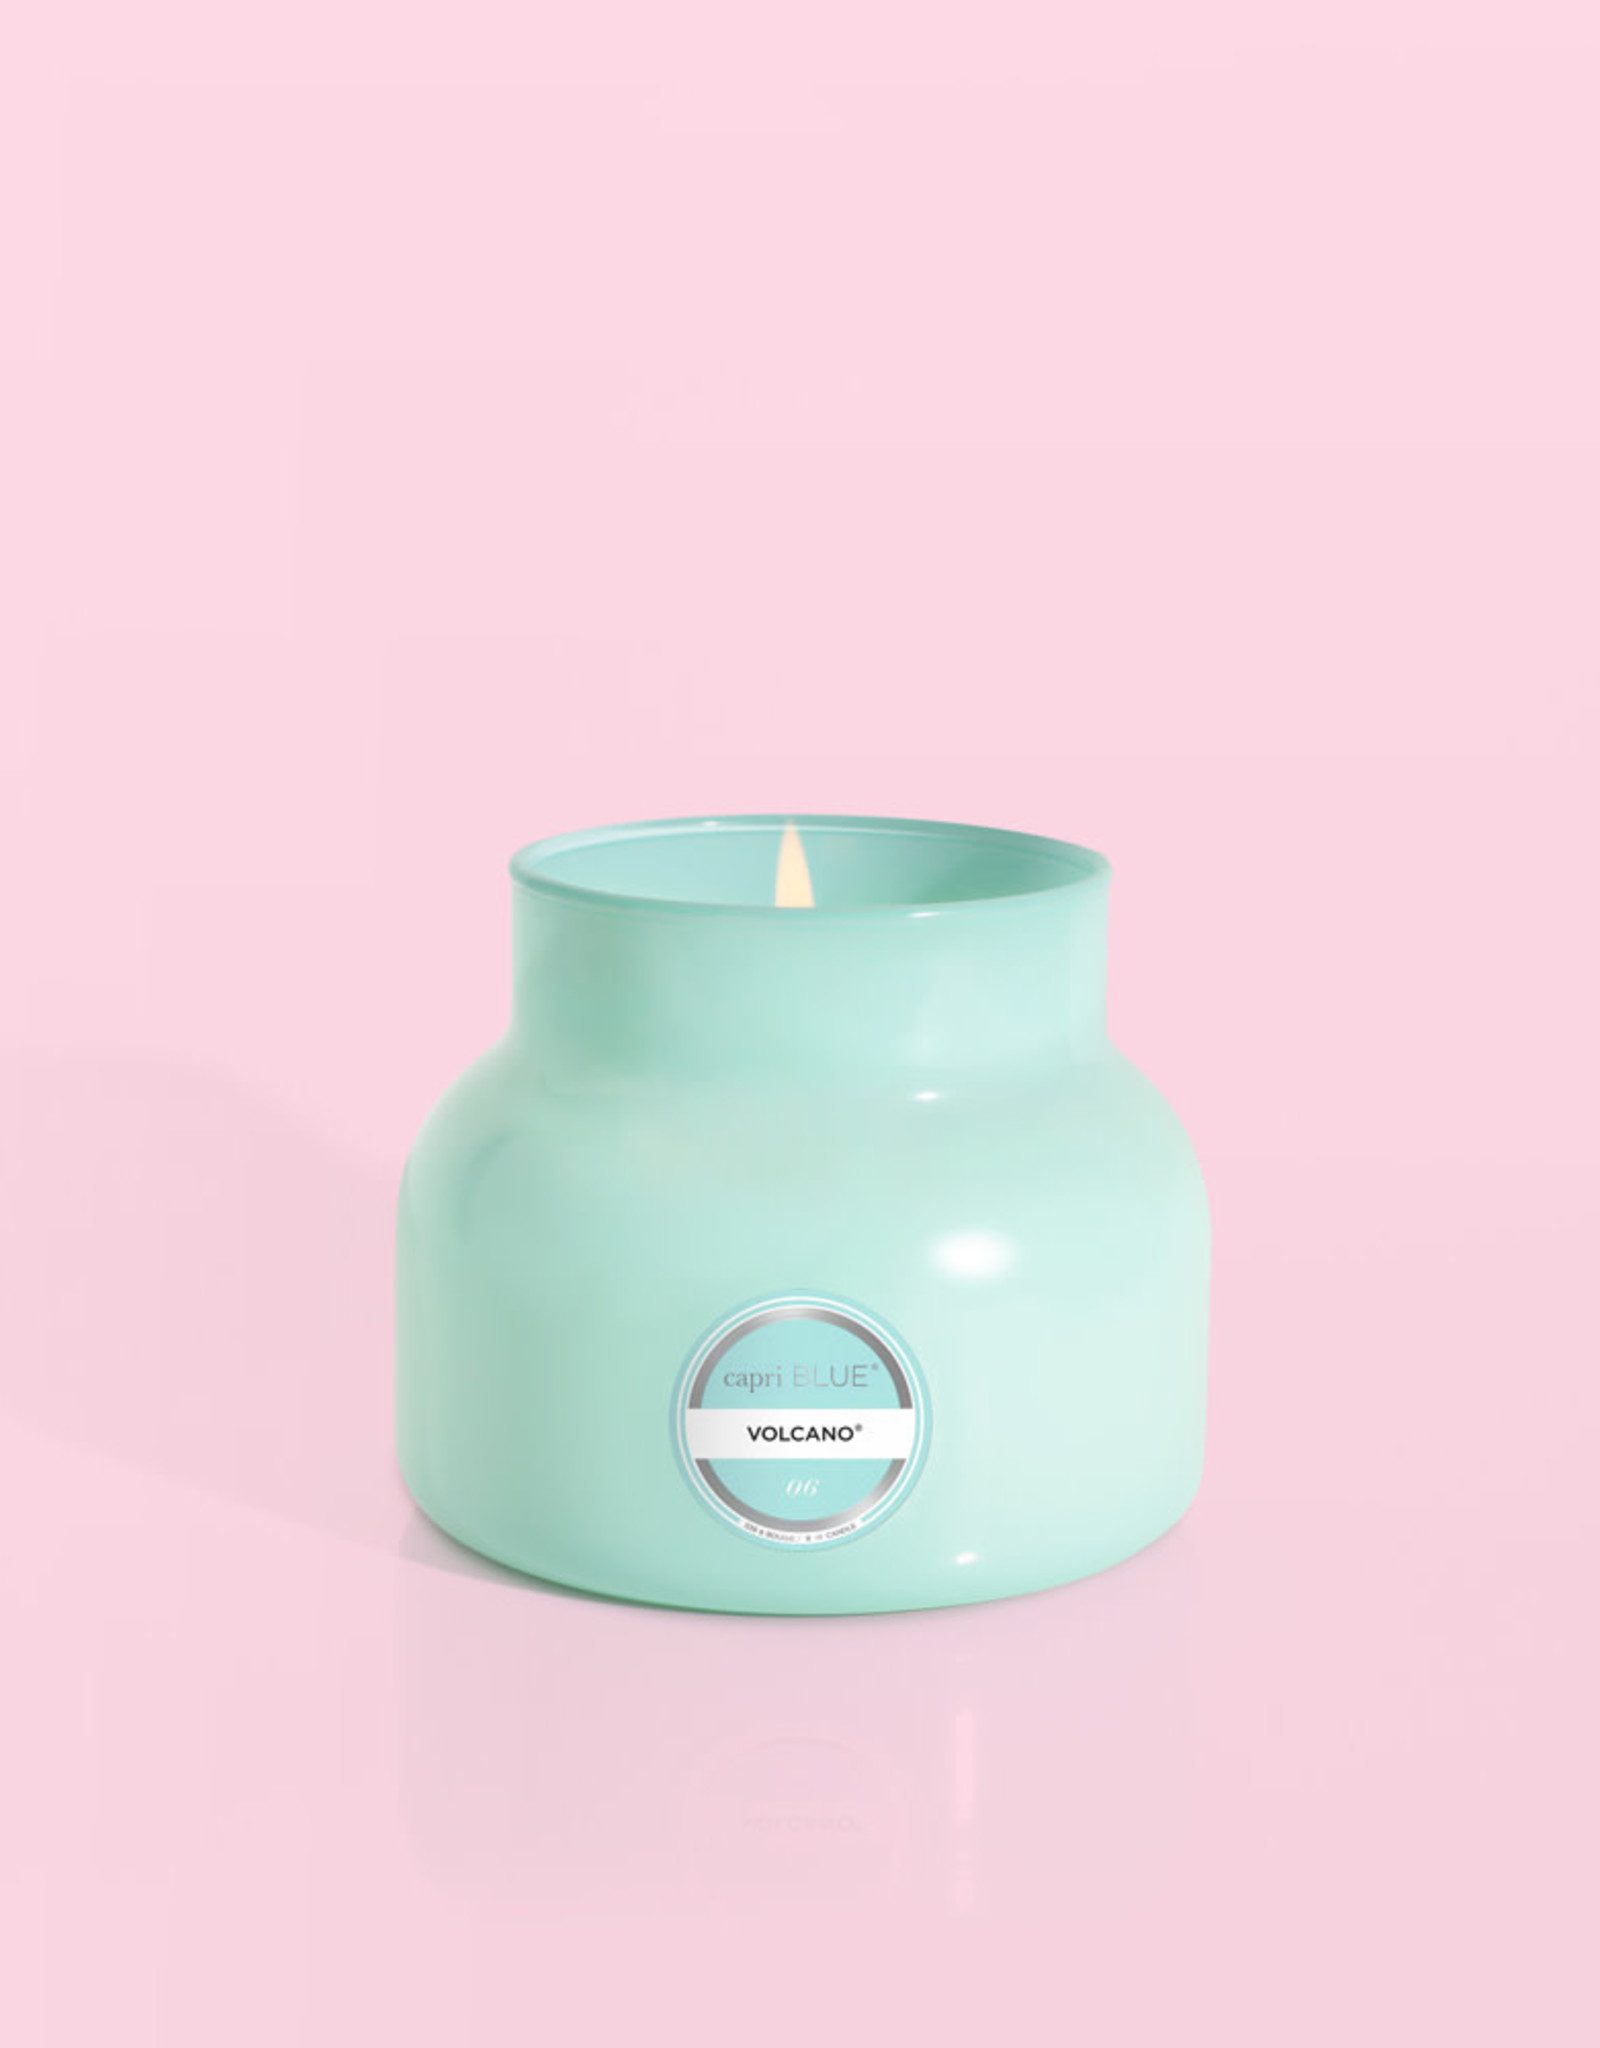 Capri Blue Petite Volcano Candle - 8oz in Teal